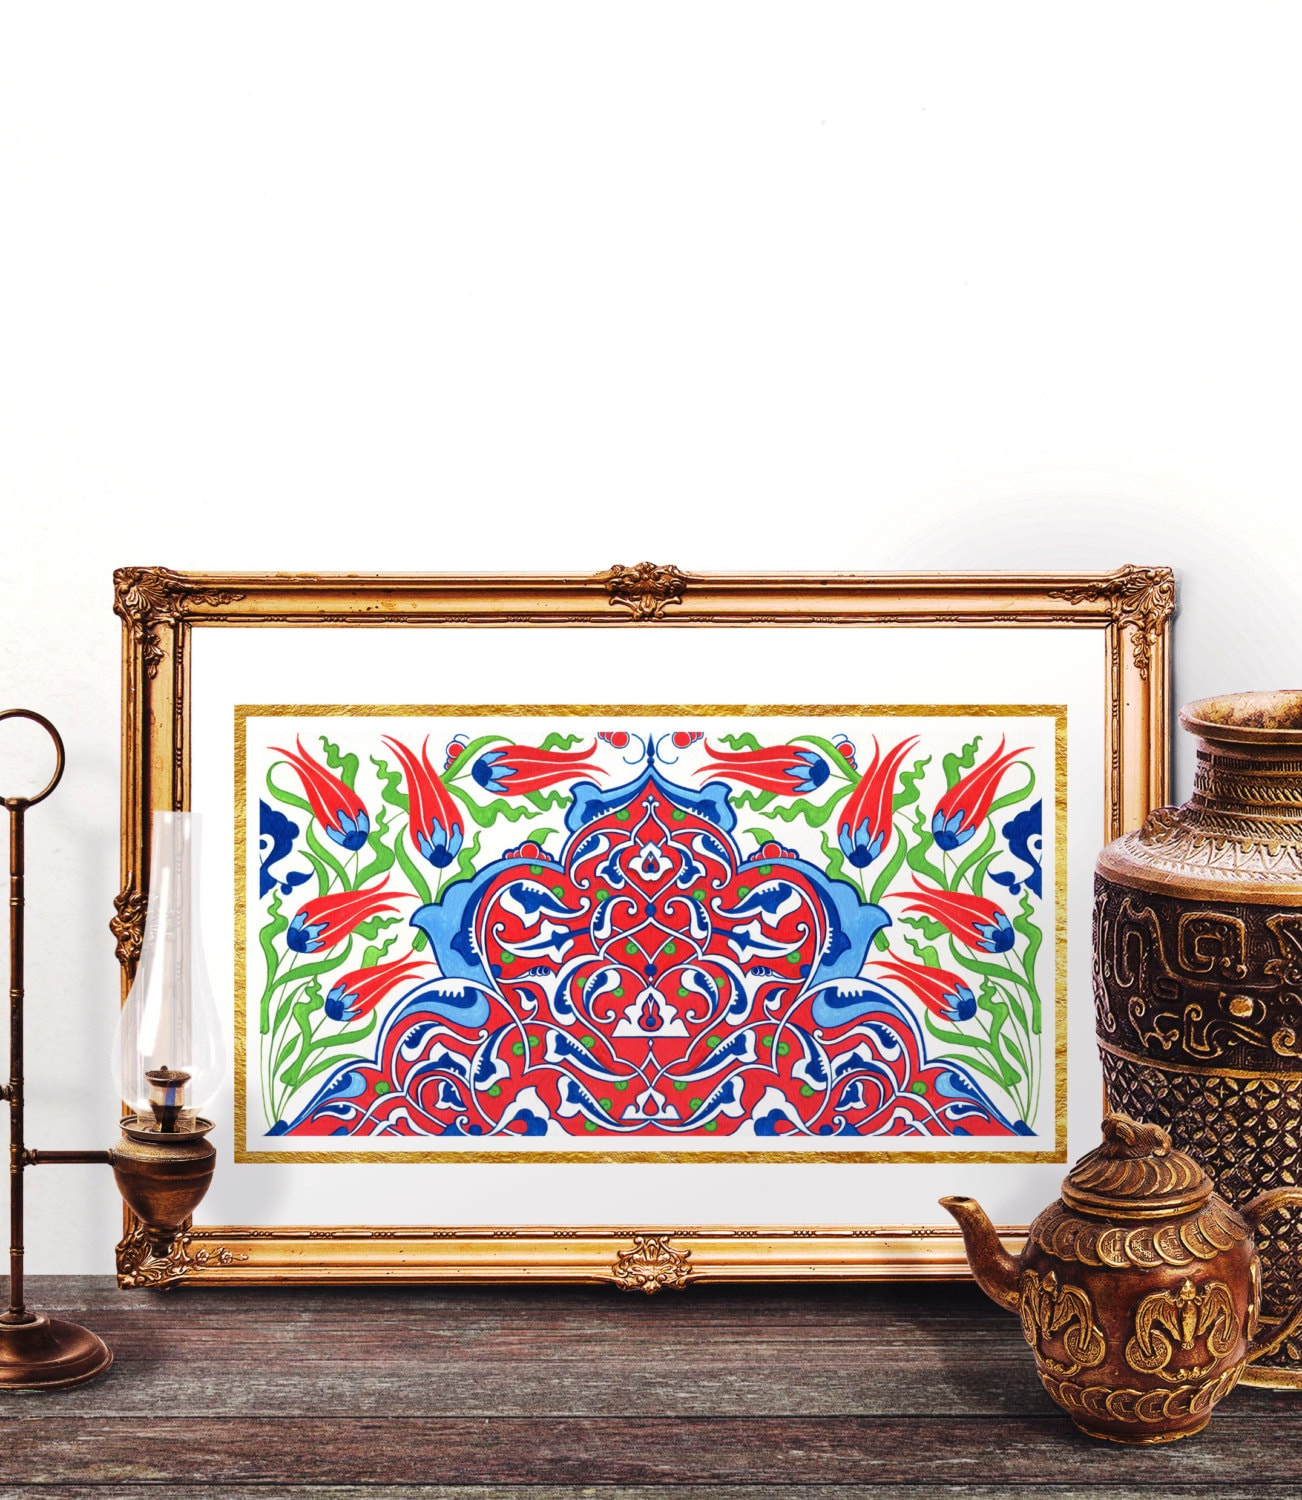 Traditional Ottoman Tulip Watercolor Wall Art Turkish Floral: Ottoman Red Tulip Watercolor Art Traditional Turkish Red